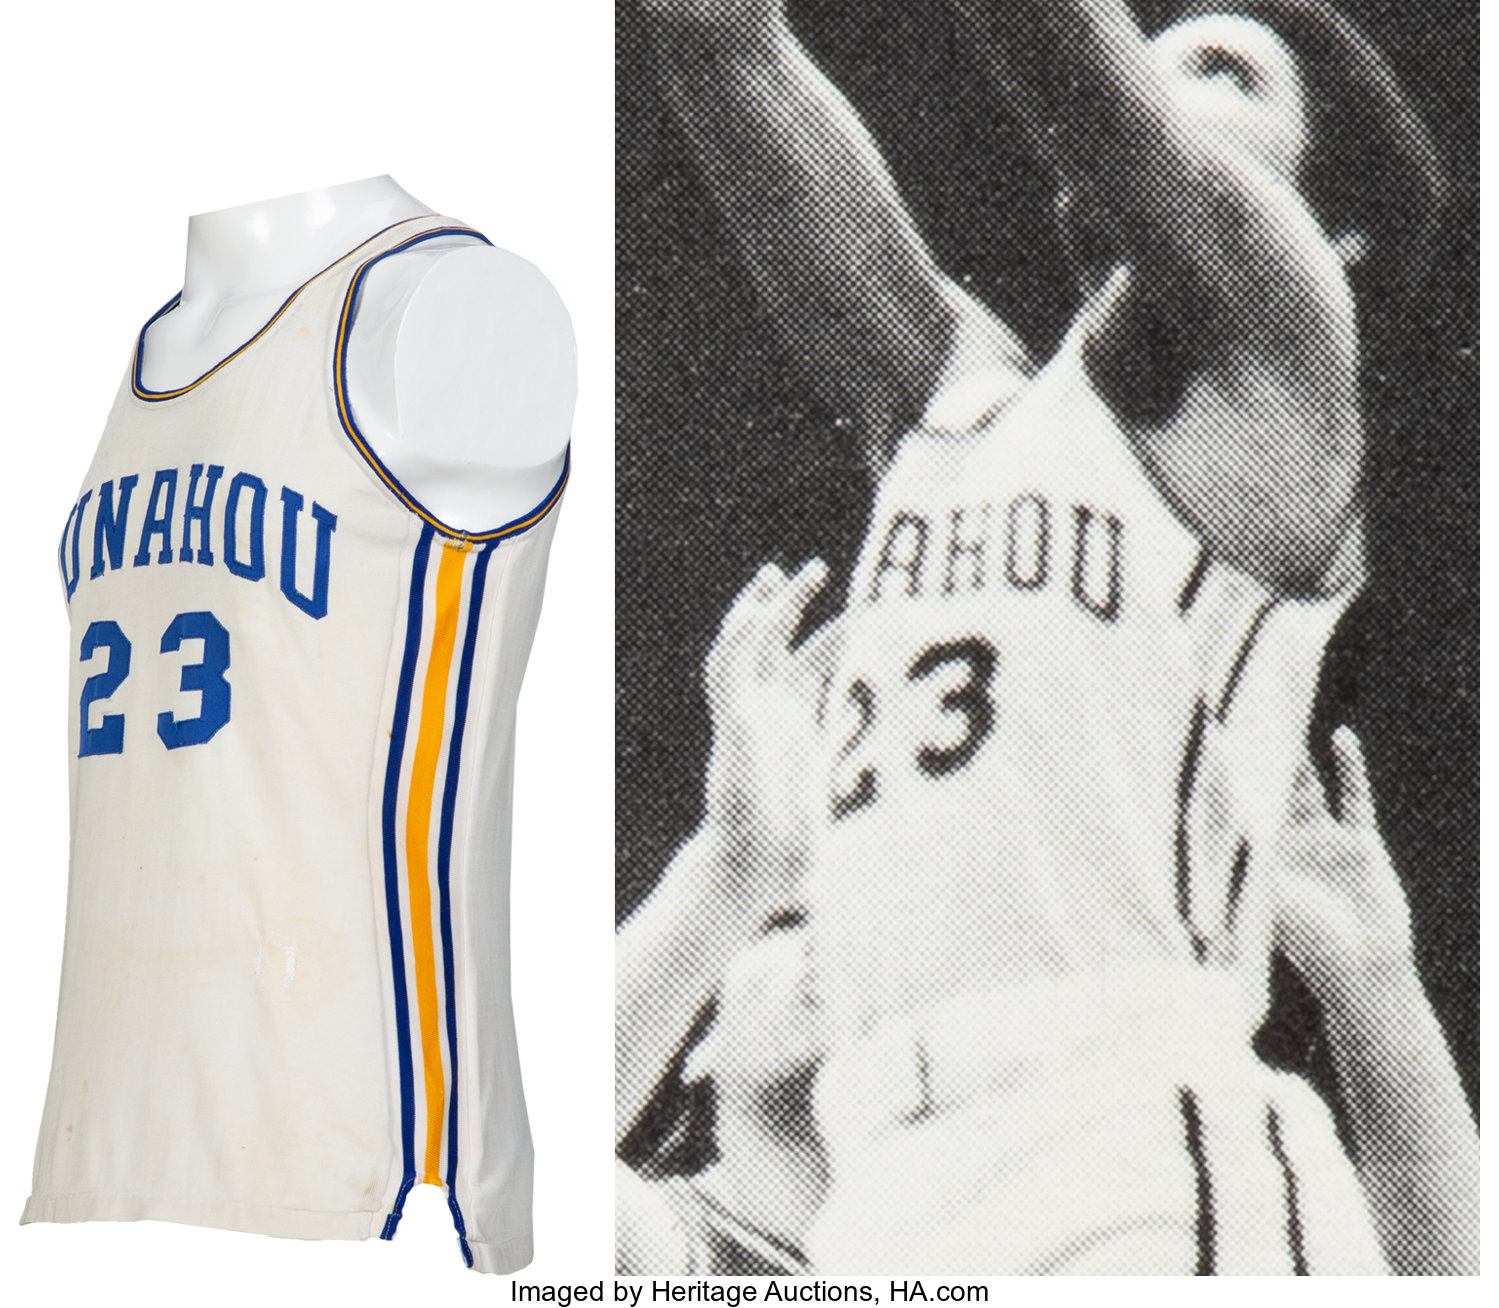 Obama wore this jersey when he played for Punahou Prep. (Heritage Auctions/Media Kit)